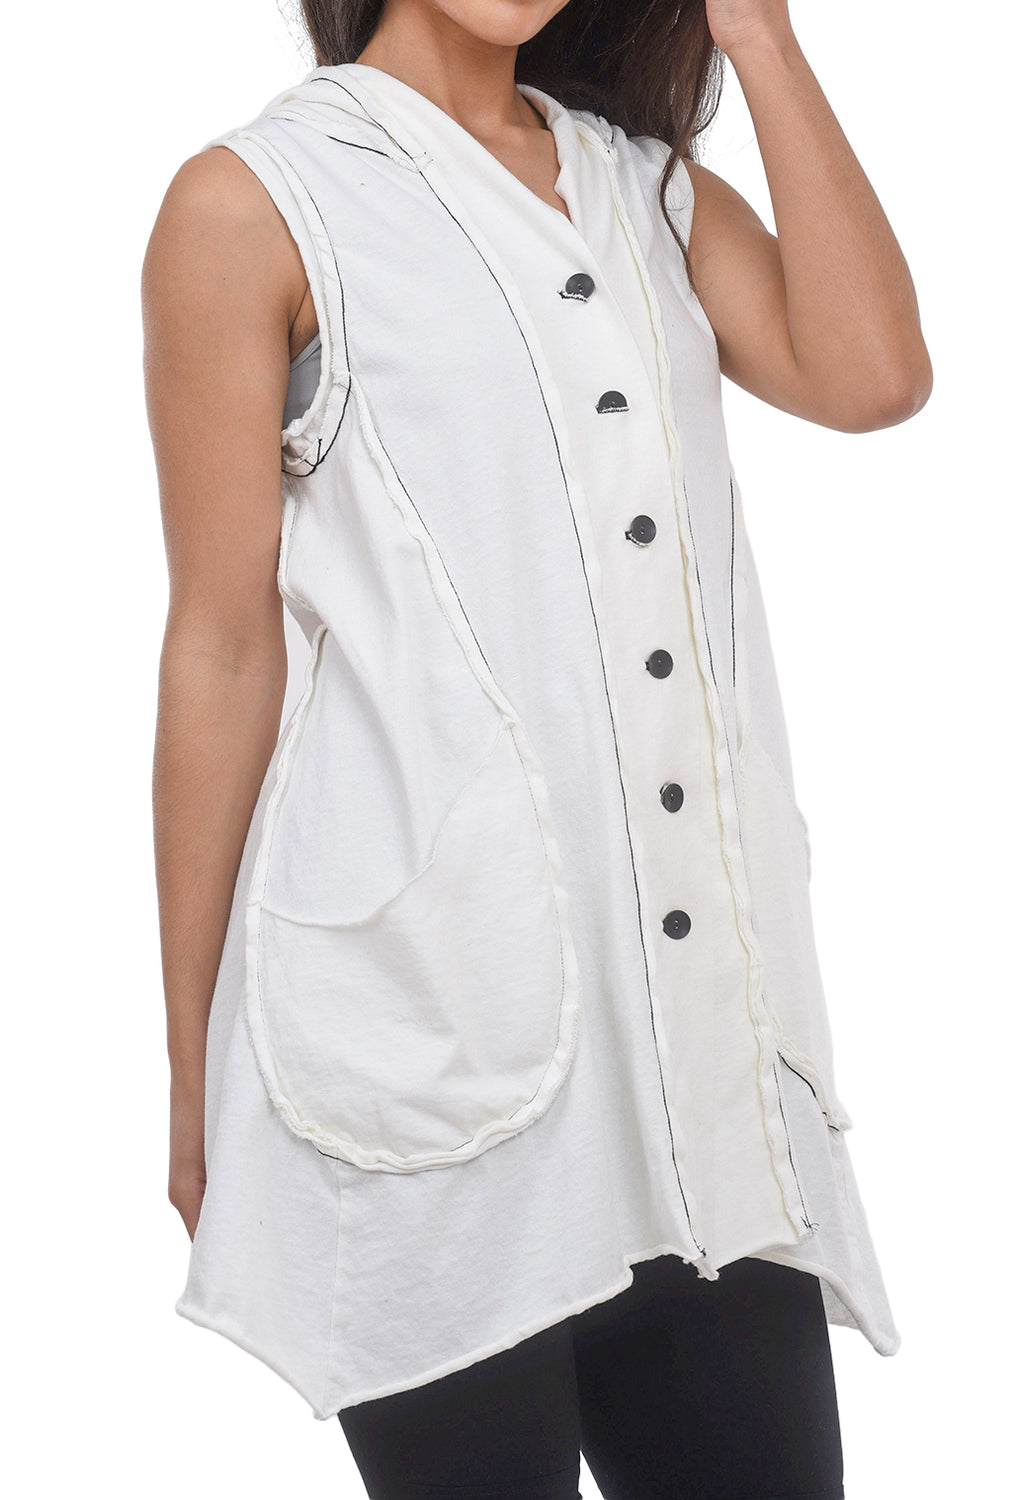 Cynthia Ashby Drift Vest, White